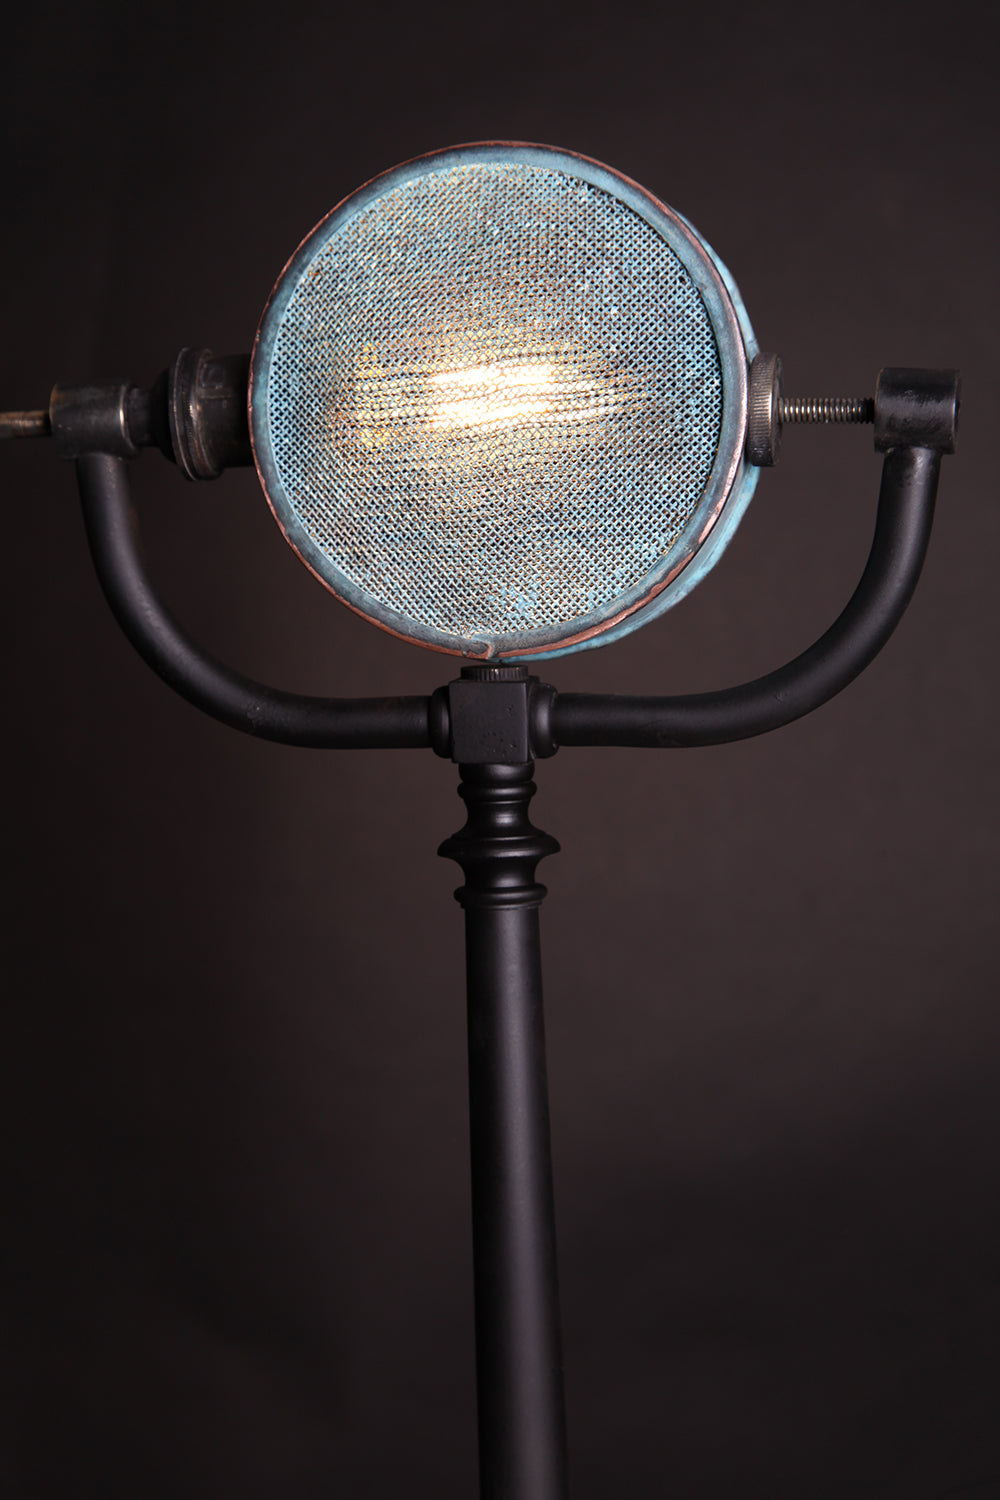 The Mic Light